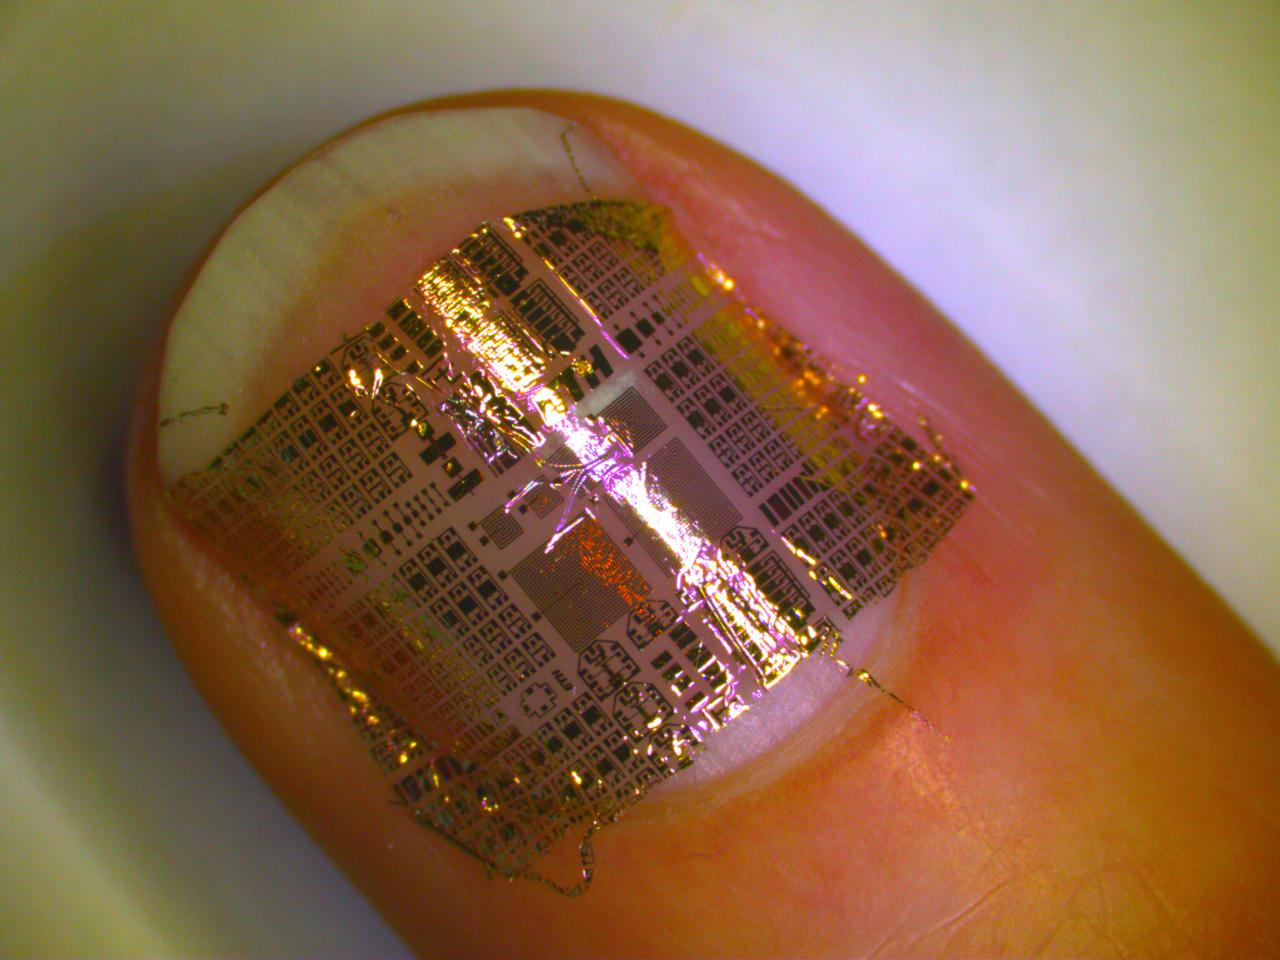 Researchers at ETH Zurich have created ultra thin, clear and flexible circuitry